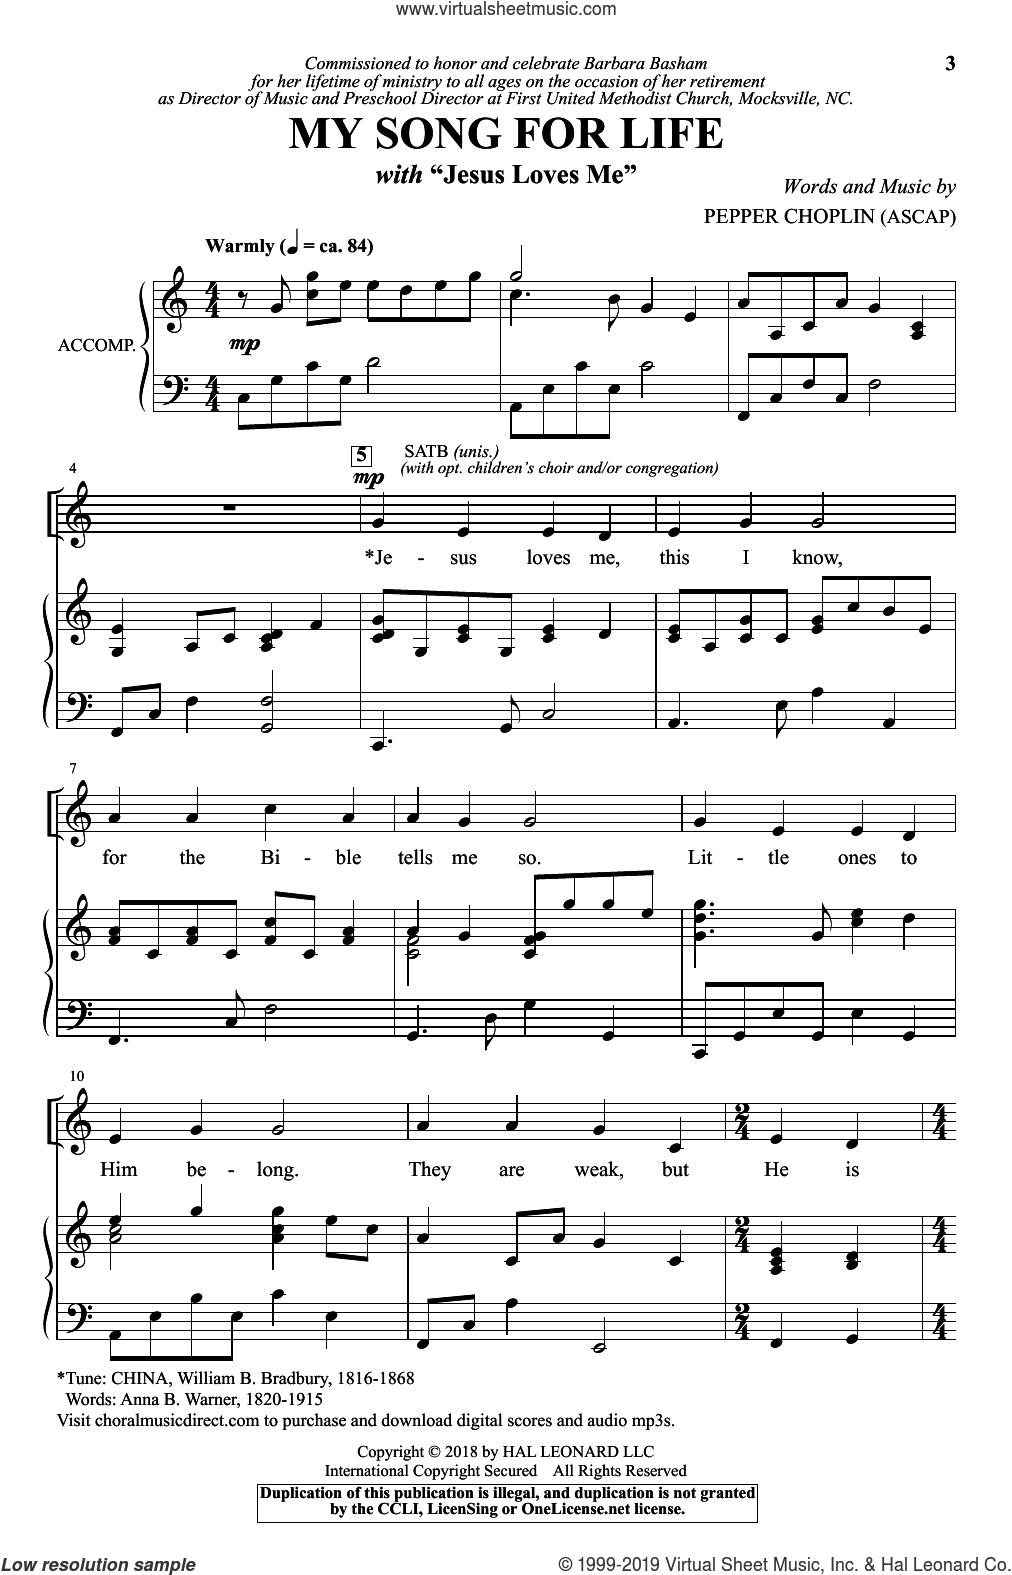 My Song For Life (With 'Jesus Loves Me') sheet music for choir (SATB: soprano, alto, tenor, bass) by Pepper Choplin, Anna B. Warner and William Bradbury, intermediate skill level